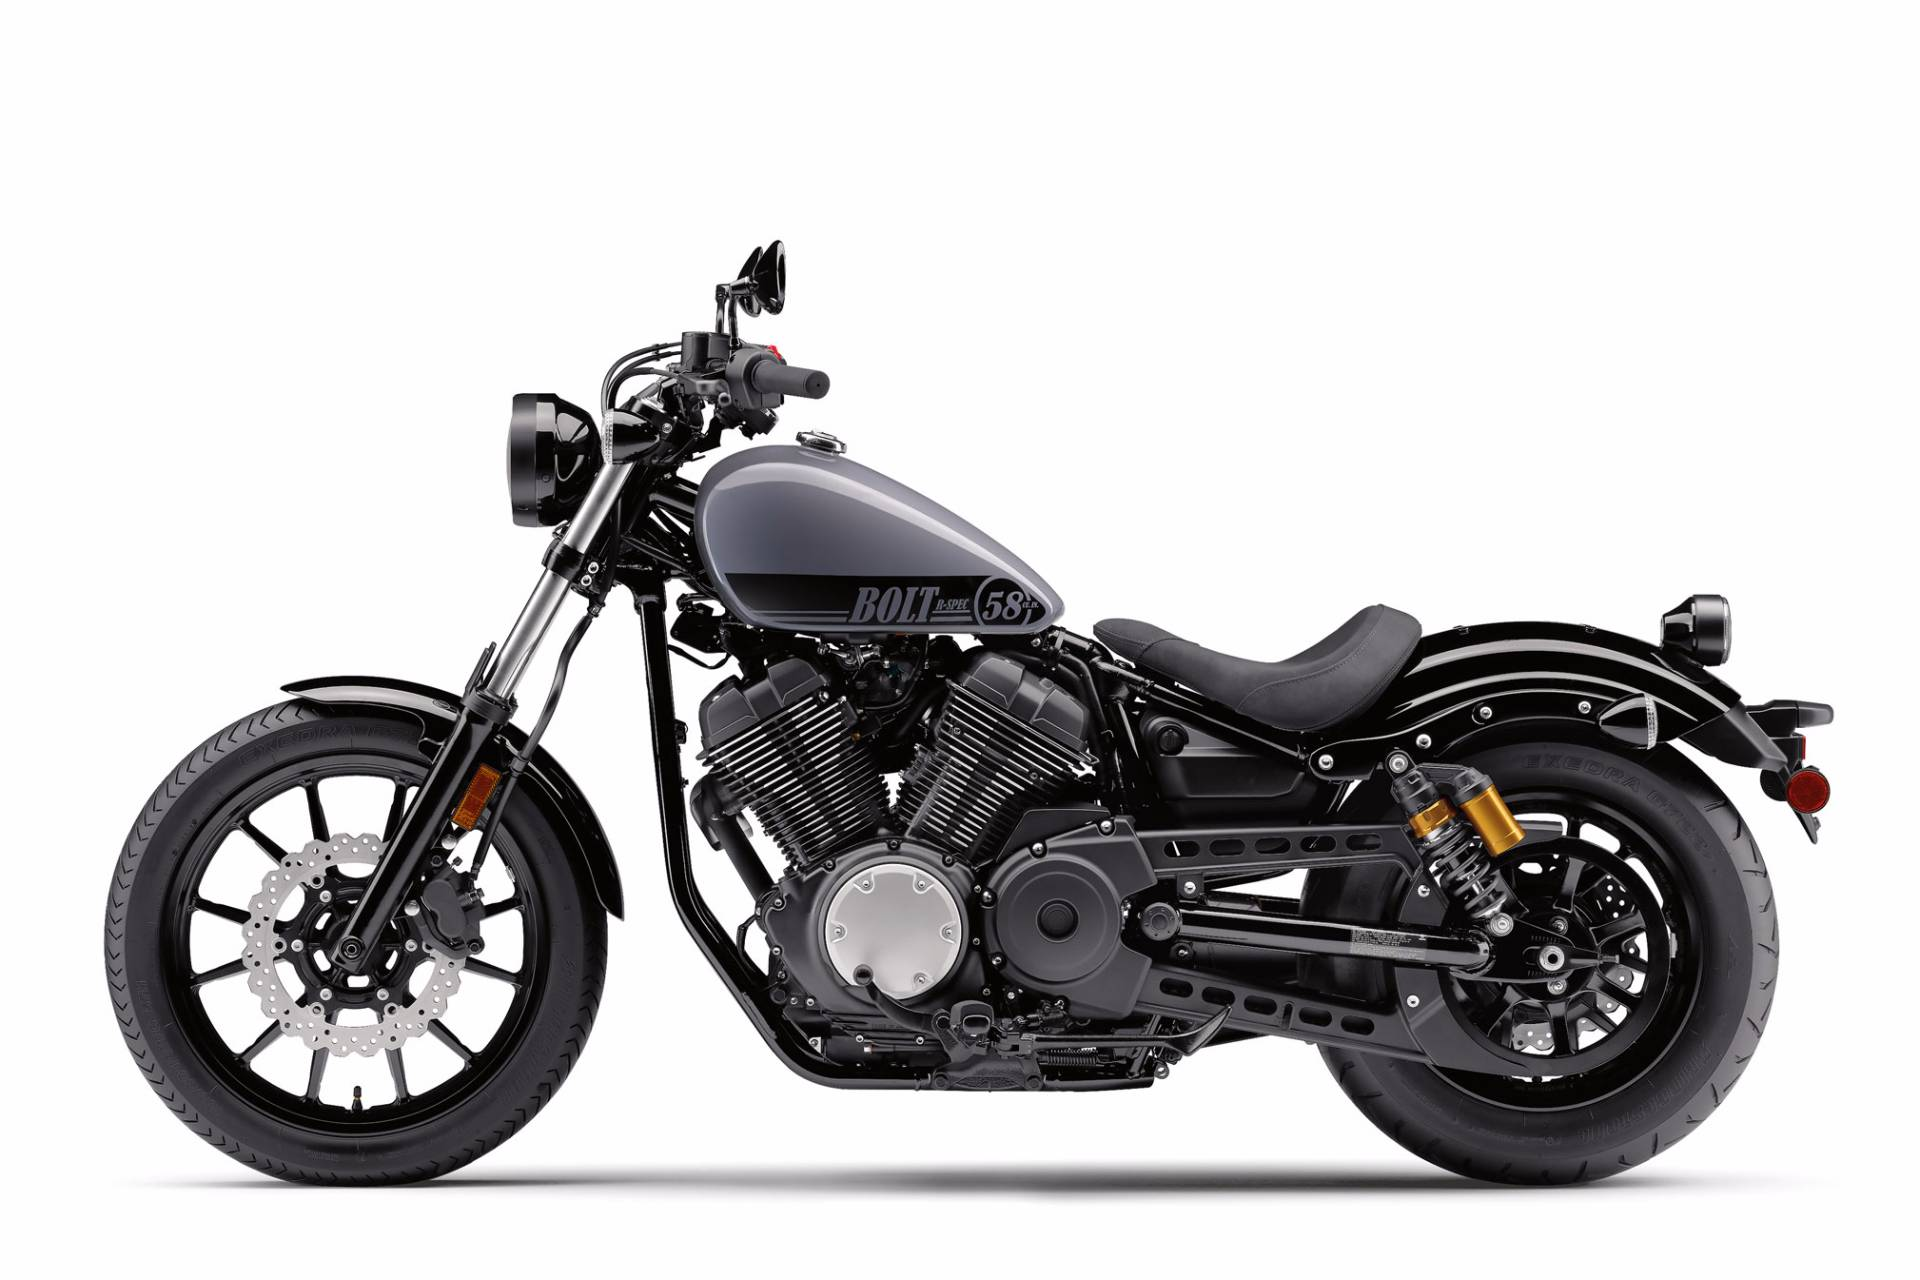 new 2018 yamaha bolt r spec motorcycles in state college pa. Black Bedroom Furniture Sets. Home Design Ideas